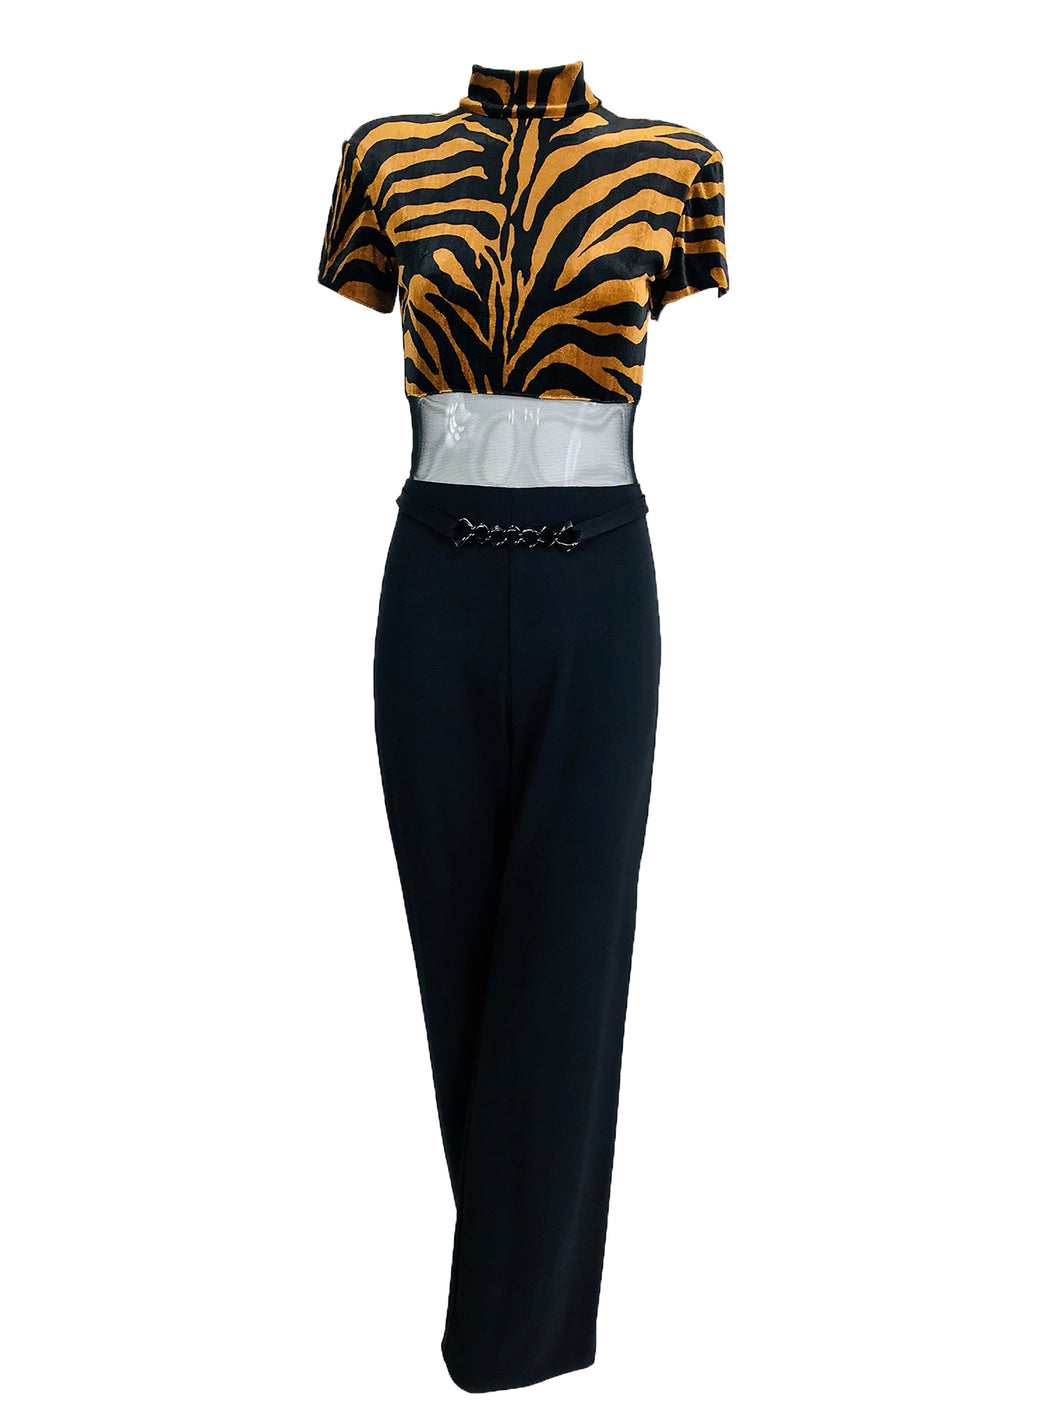 Tiger Panne Velvet Mesh and Jersey Jumpsuit 1970s Cache'